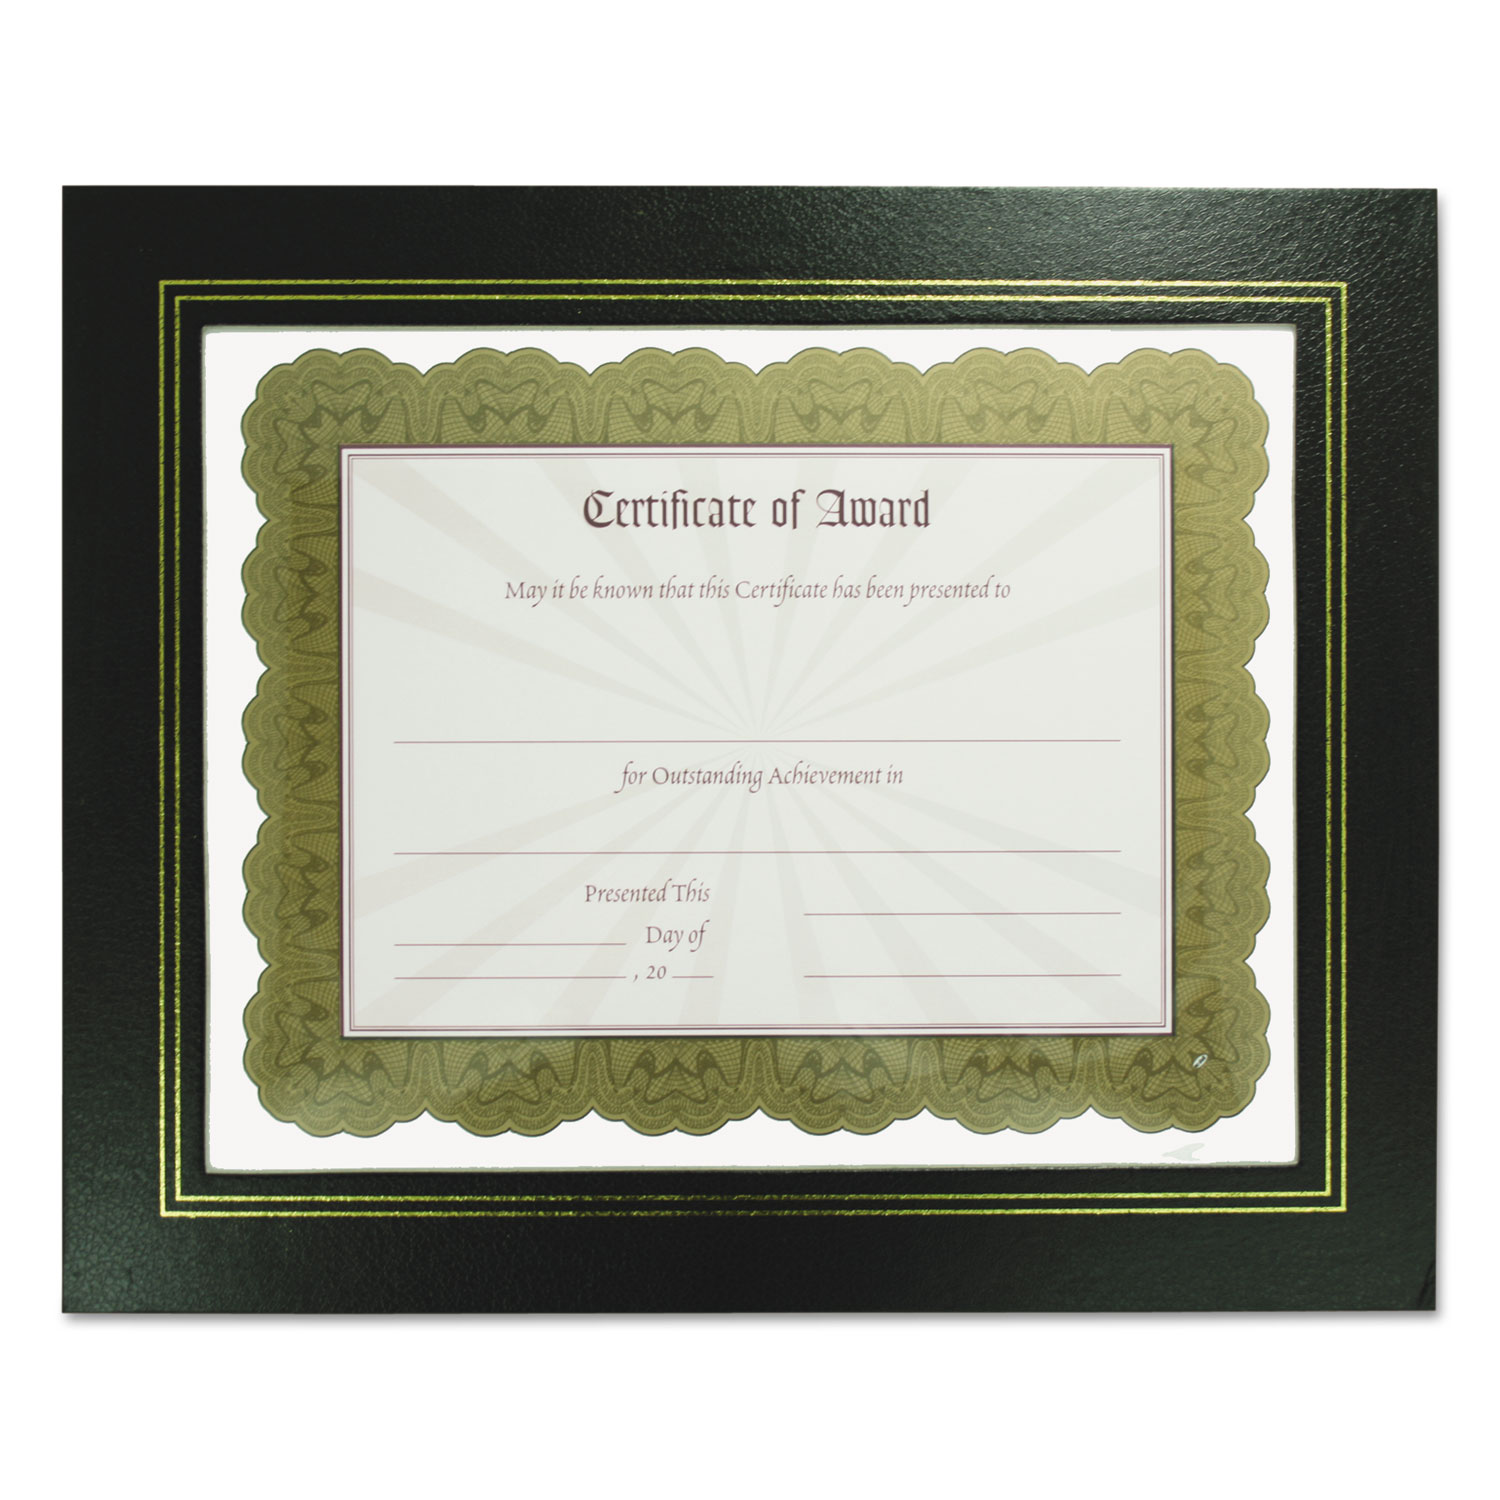 Leatherette Document Frame by NuDell™ NUD21202 - OnTimeSupplies.com